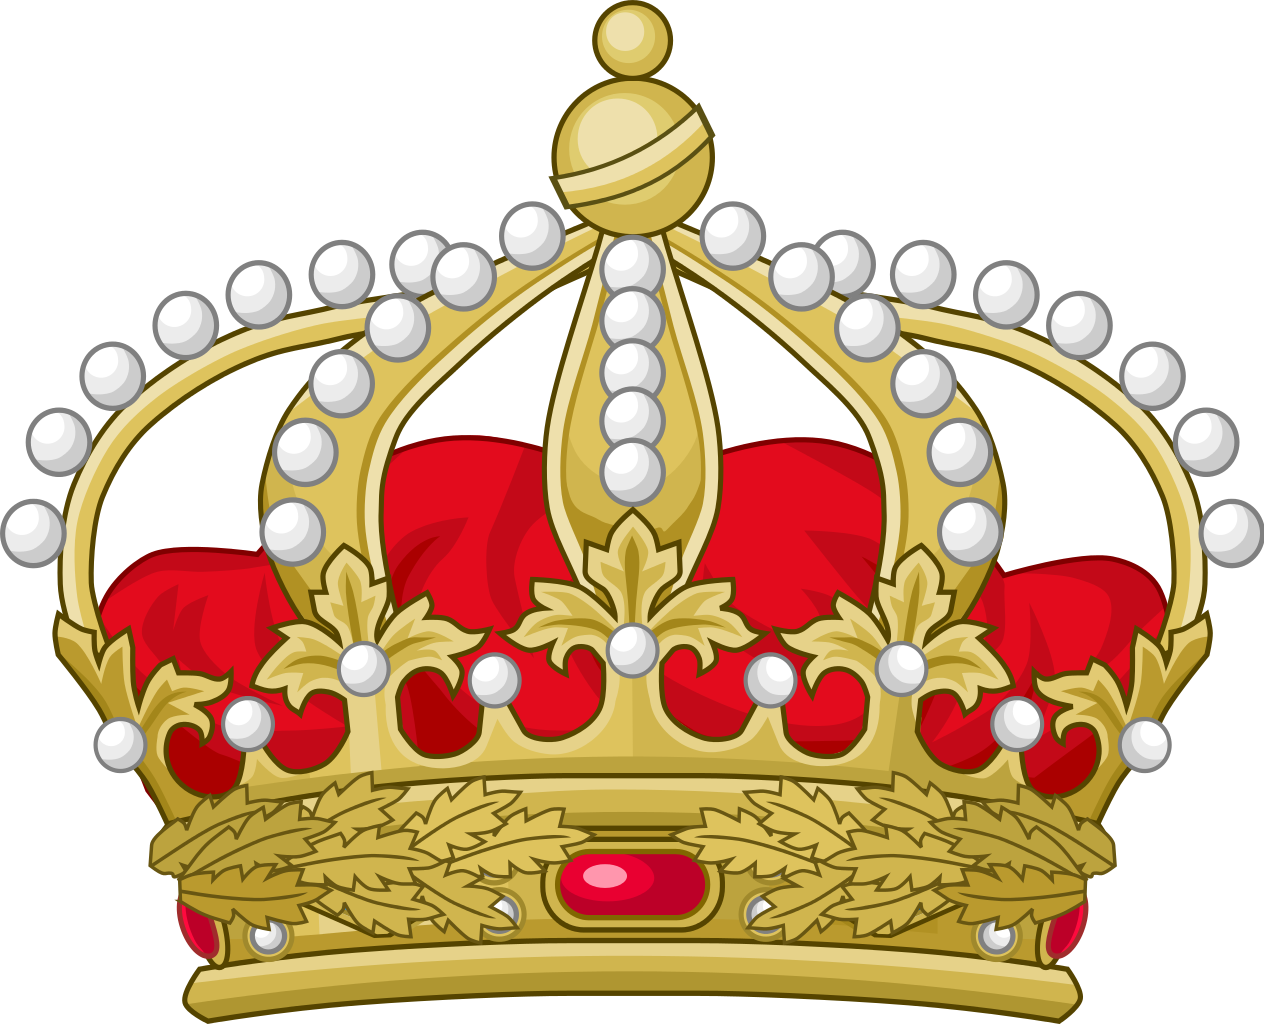 English crown clipart graphic freeuse stock File:Crown of Orléans.svg - Wikimedia Commons graphic freeuse stock